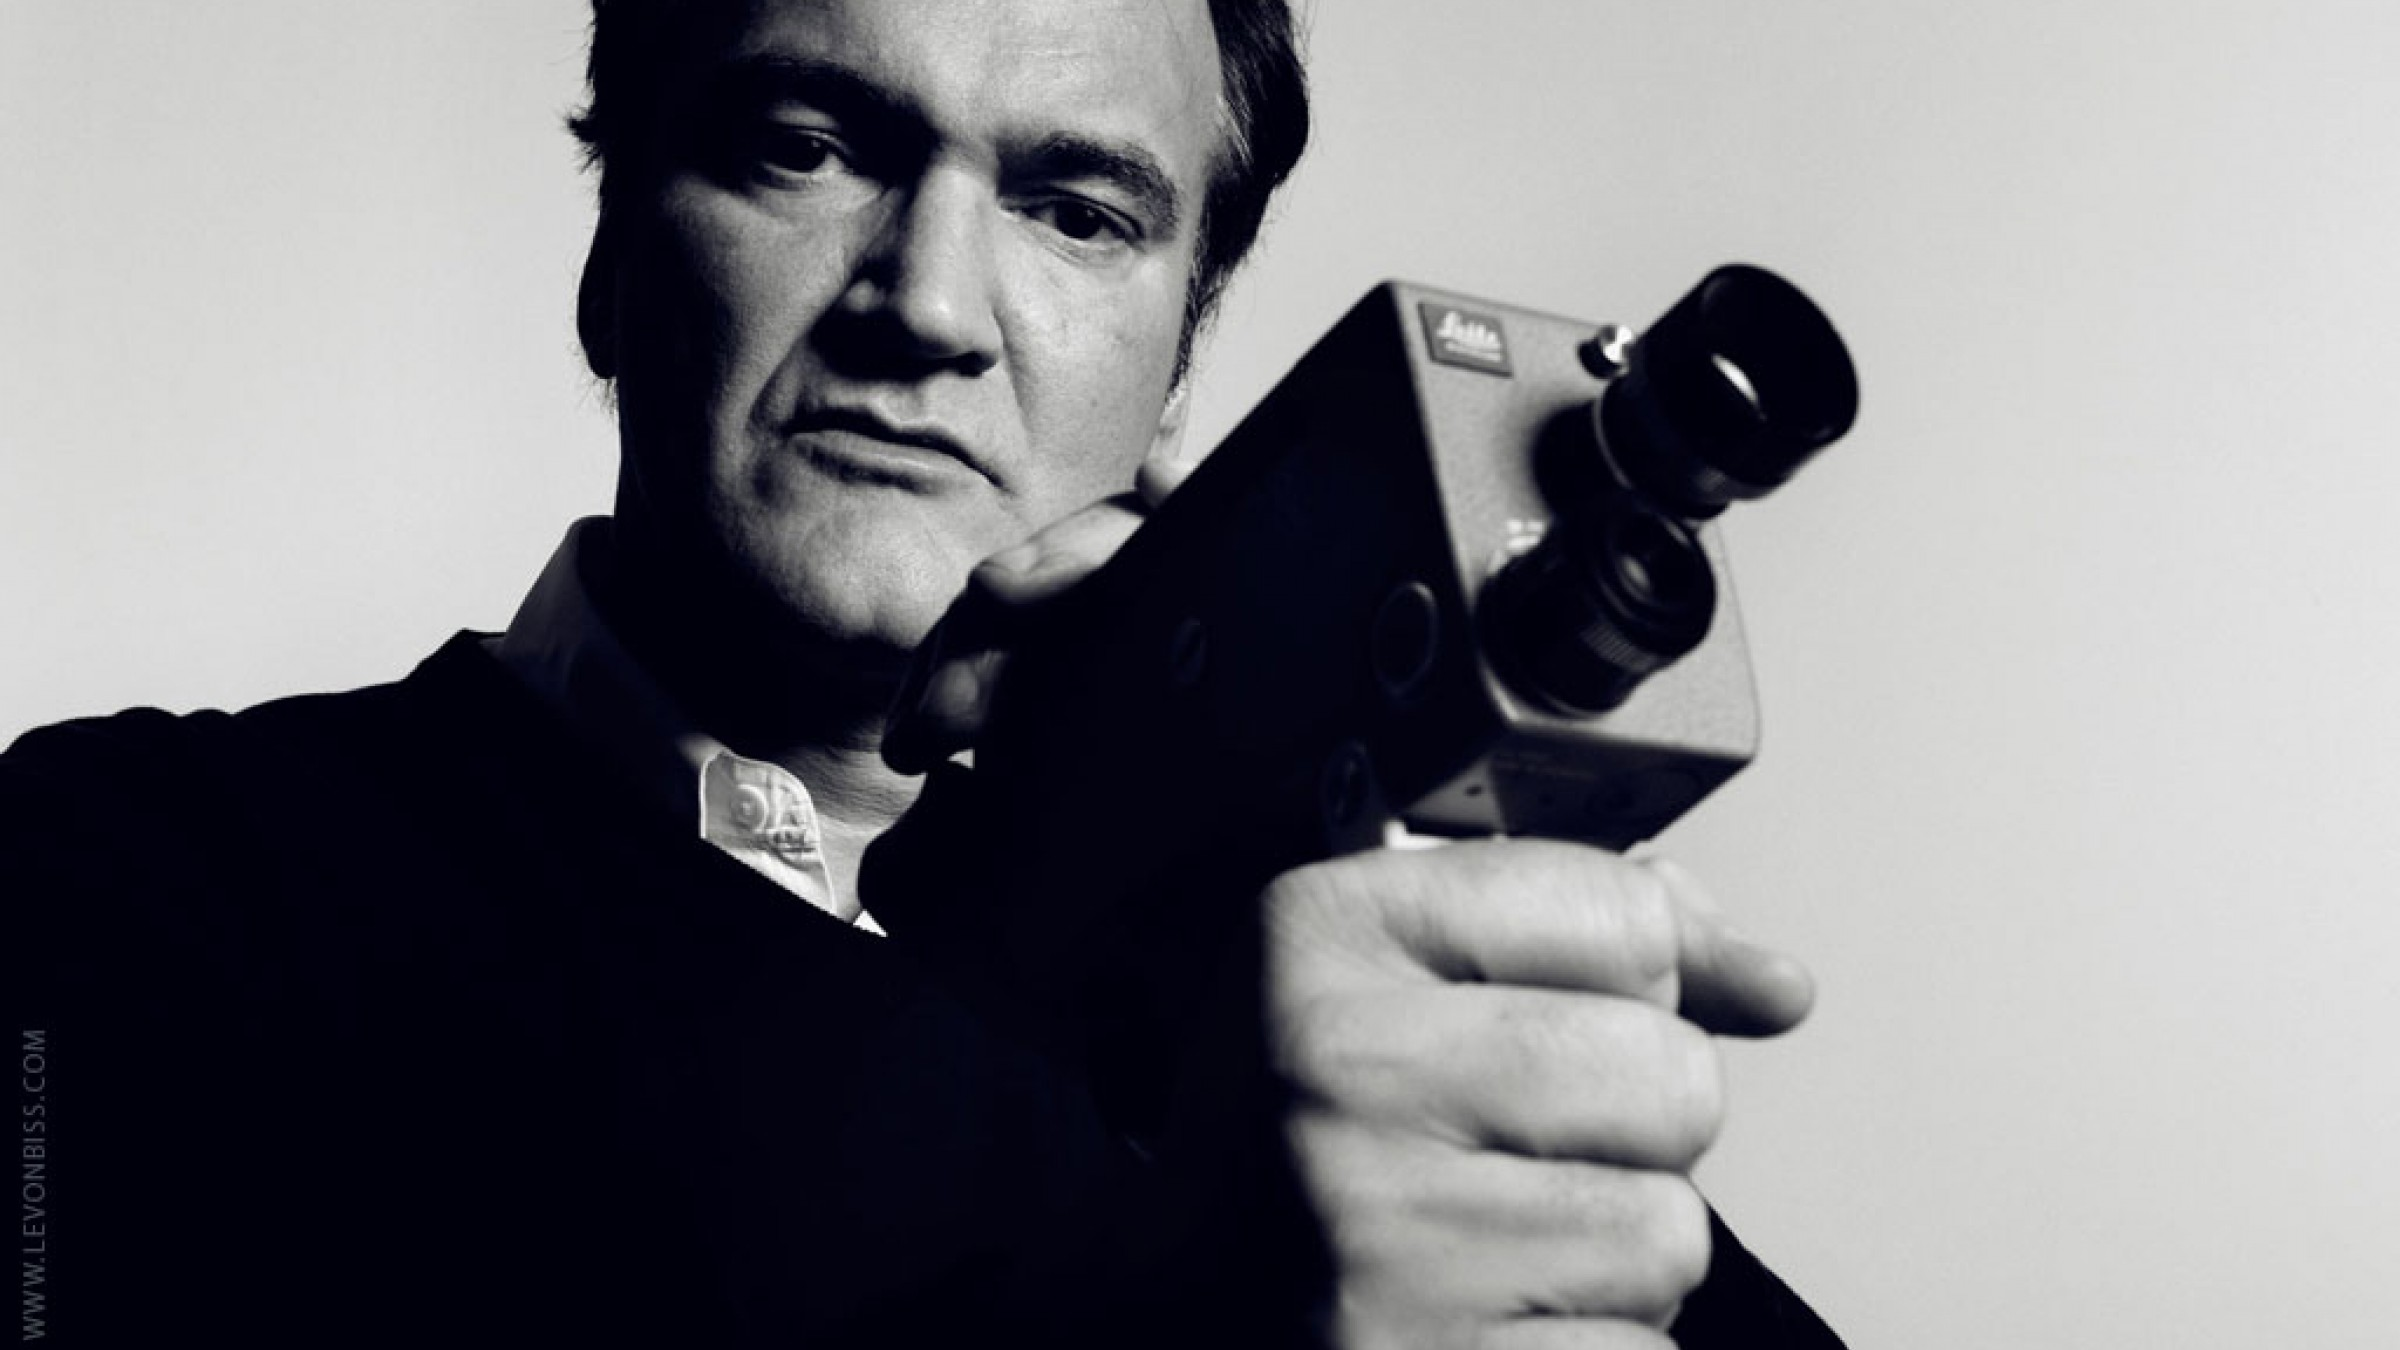 Tarantino on His Influences: If You Love Cinema You Can't Help but Make a Good Movie